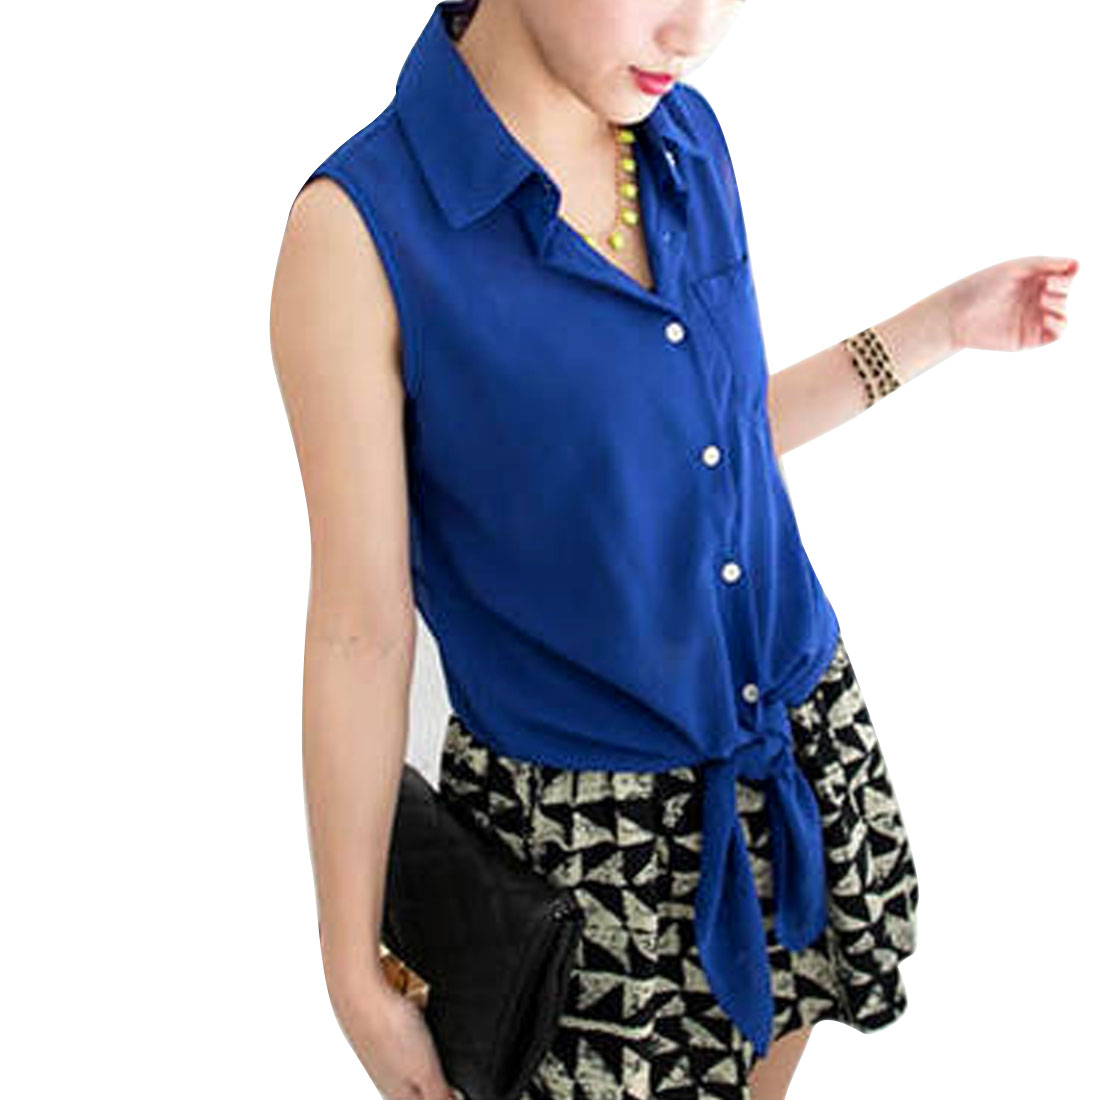 Ladies Point Collar Button Up Sleeveless Semi Sheer Top Shirt Royal Blue S